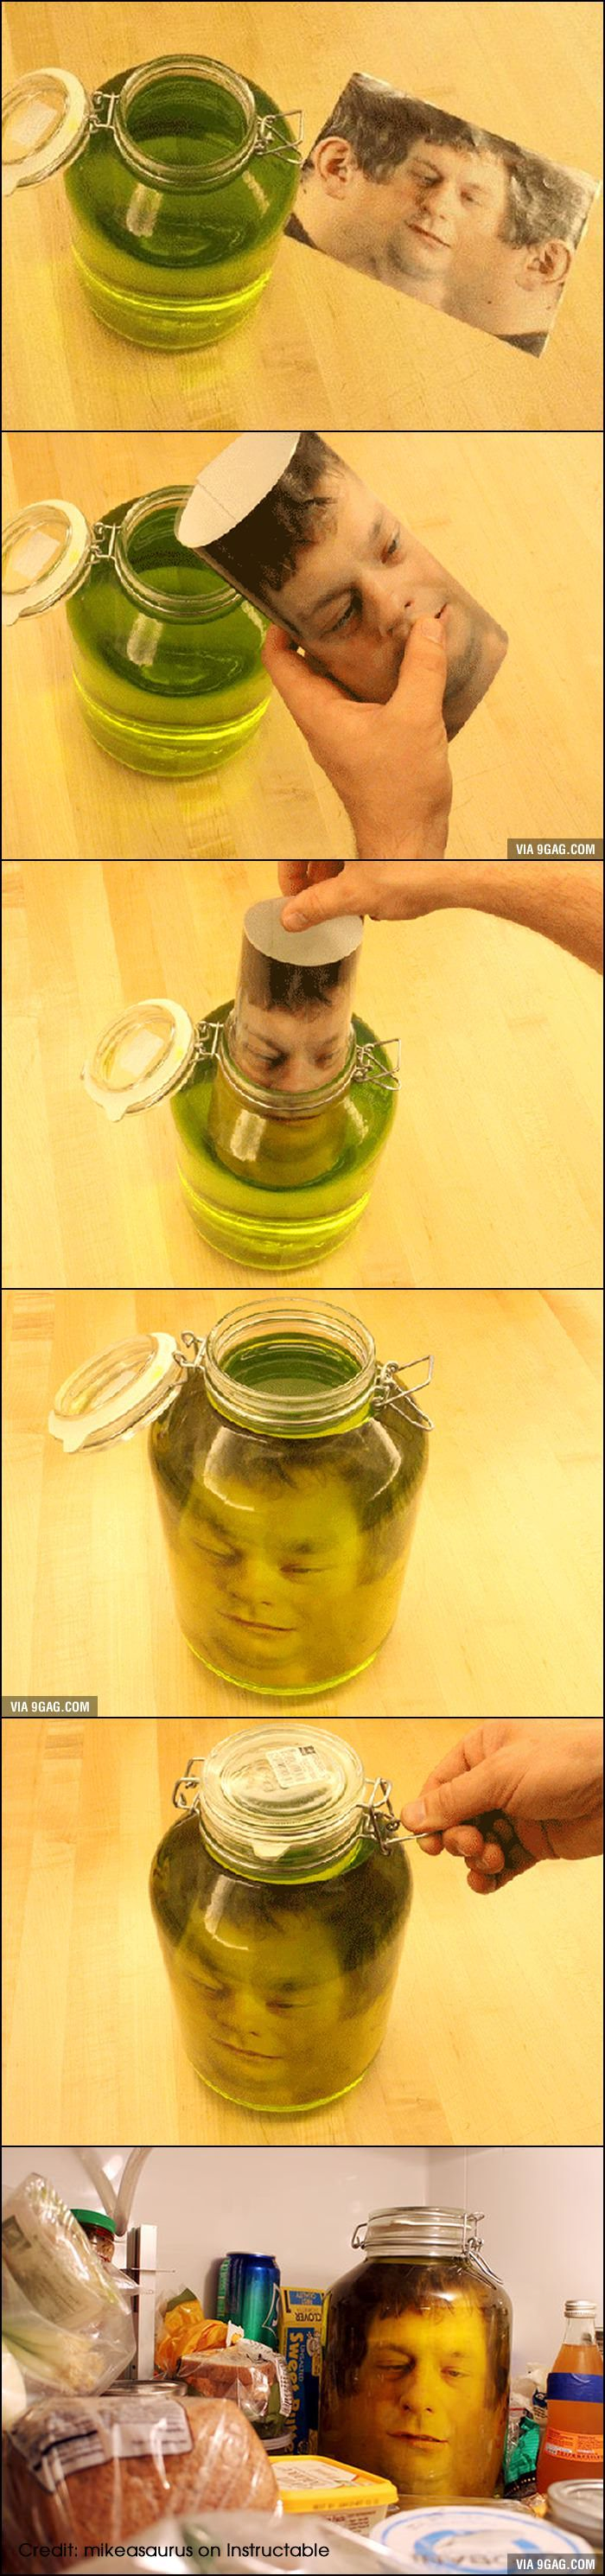 "This ""Head In A Jar"" Prank Is Pretty Scary"